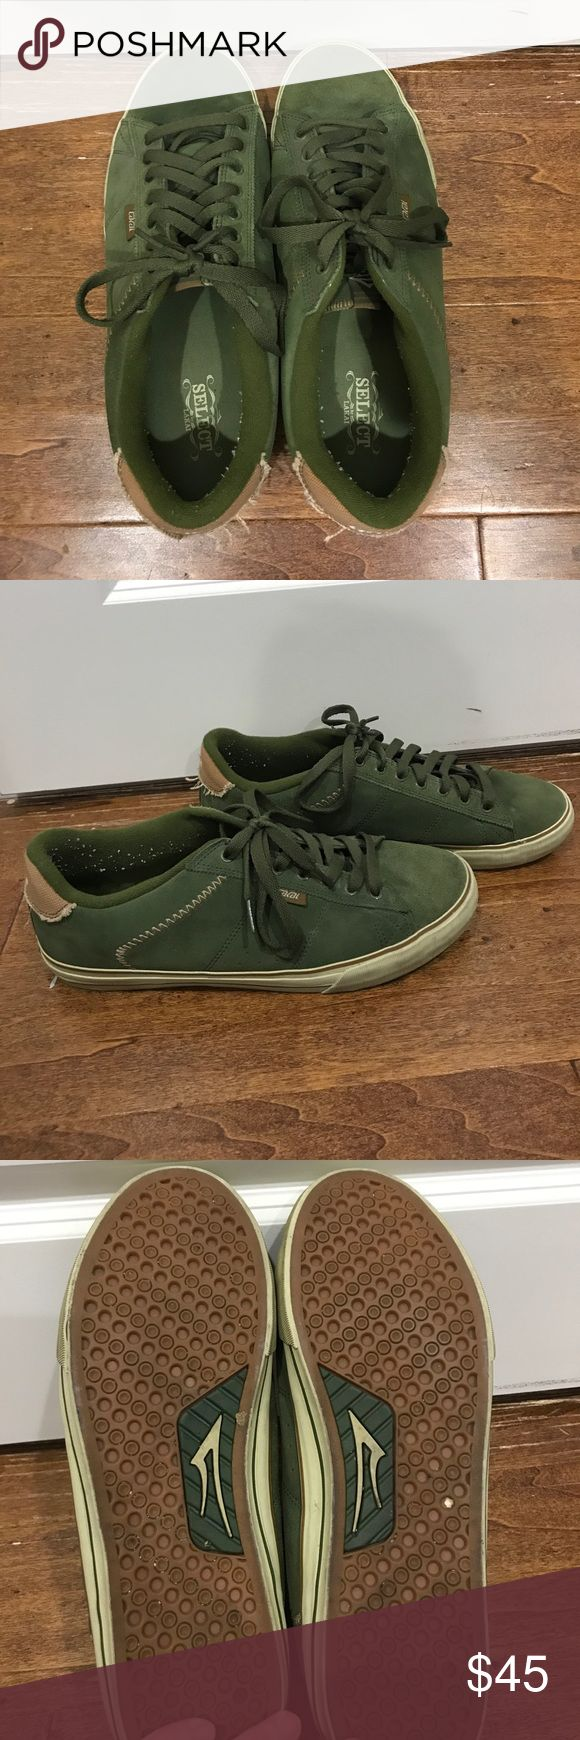 RARE Select by Lakai Rick Howard skate shoes 💥RARE💥 Men's skate shoes, hard to find!! Barely worn, some piling from socks around heel, easily removed. Select by Lakai Shoes Sneakers